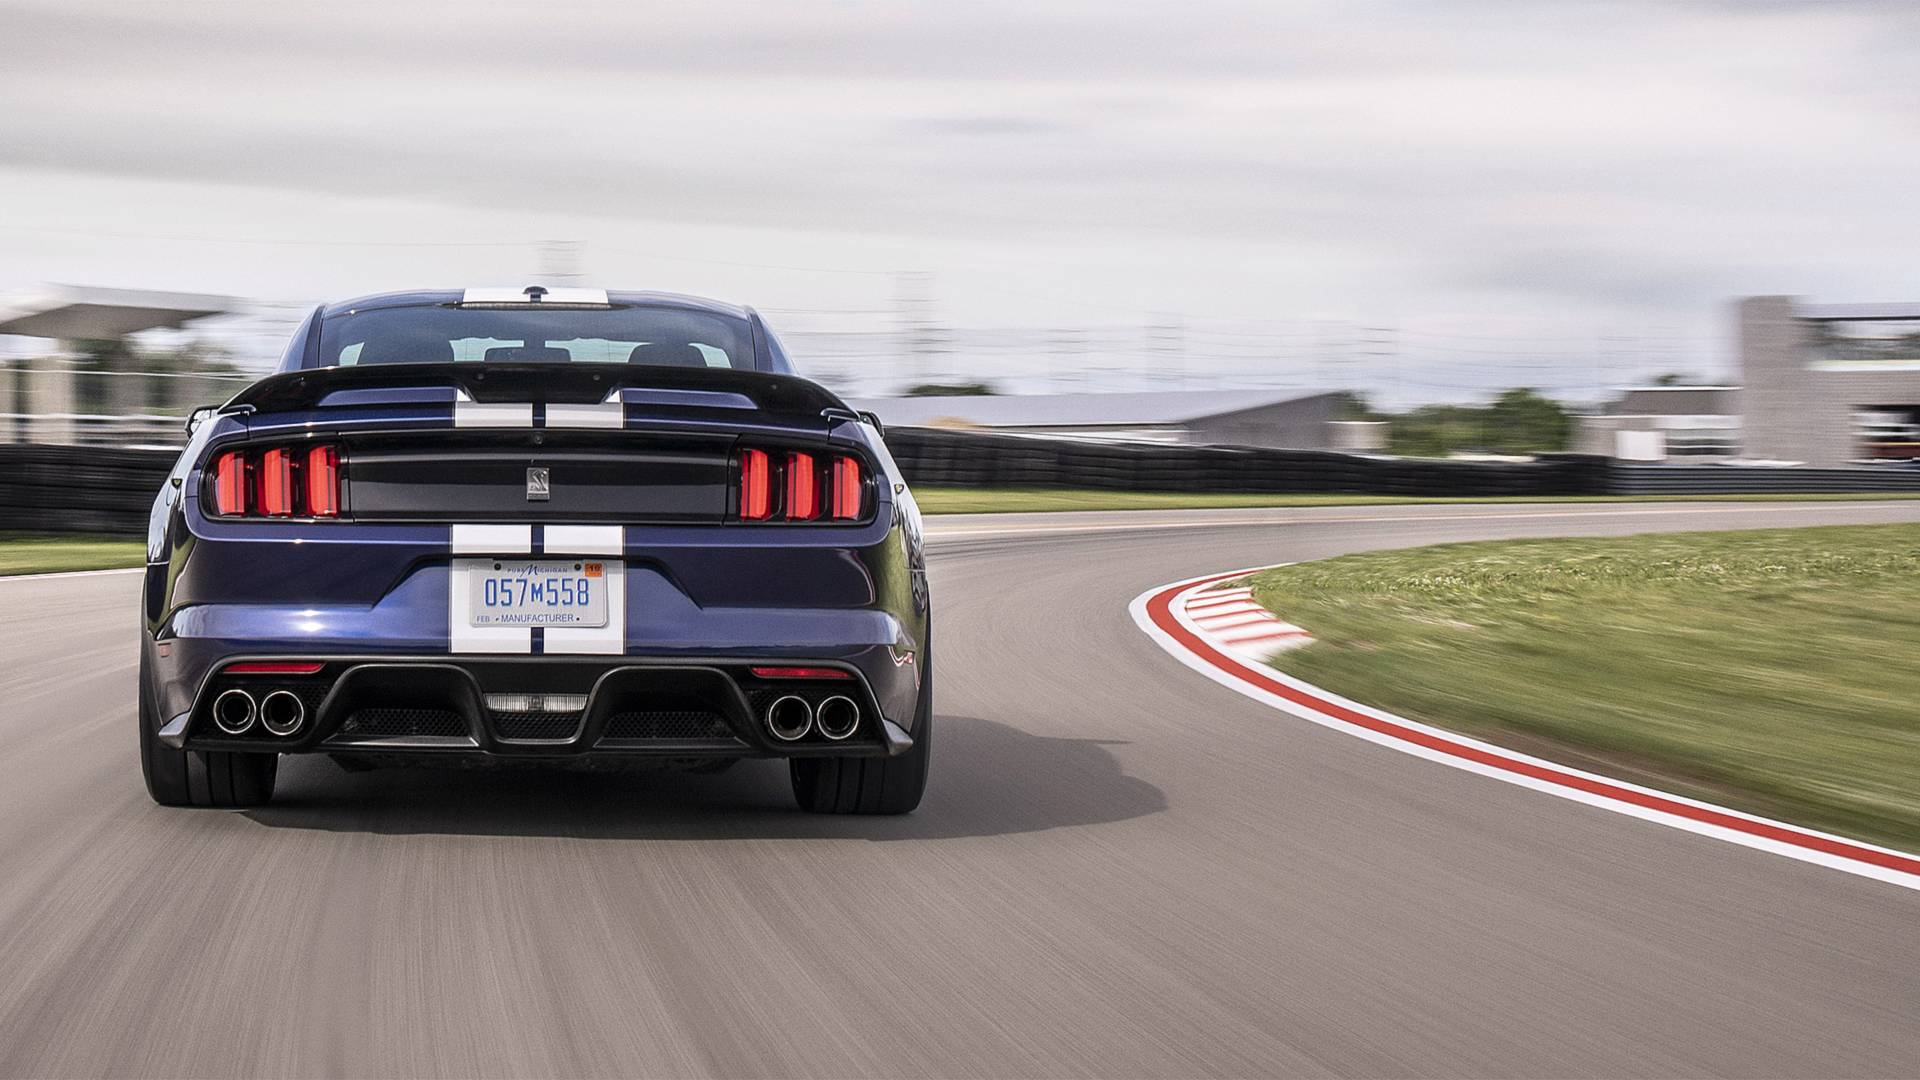 67 A 2019 Ford Mustang Shelby Gt 350 Photos